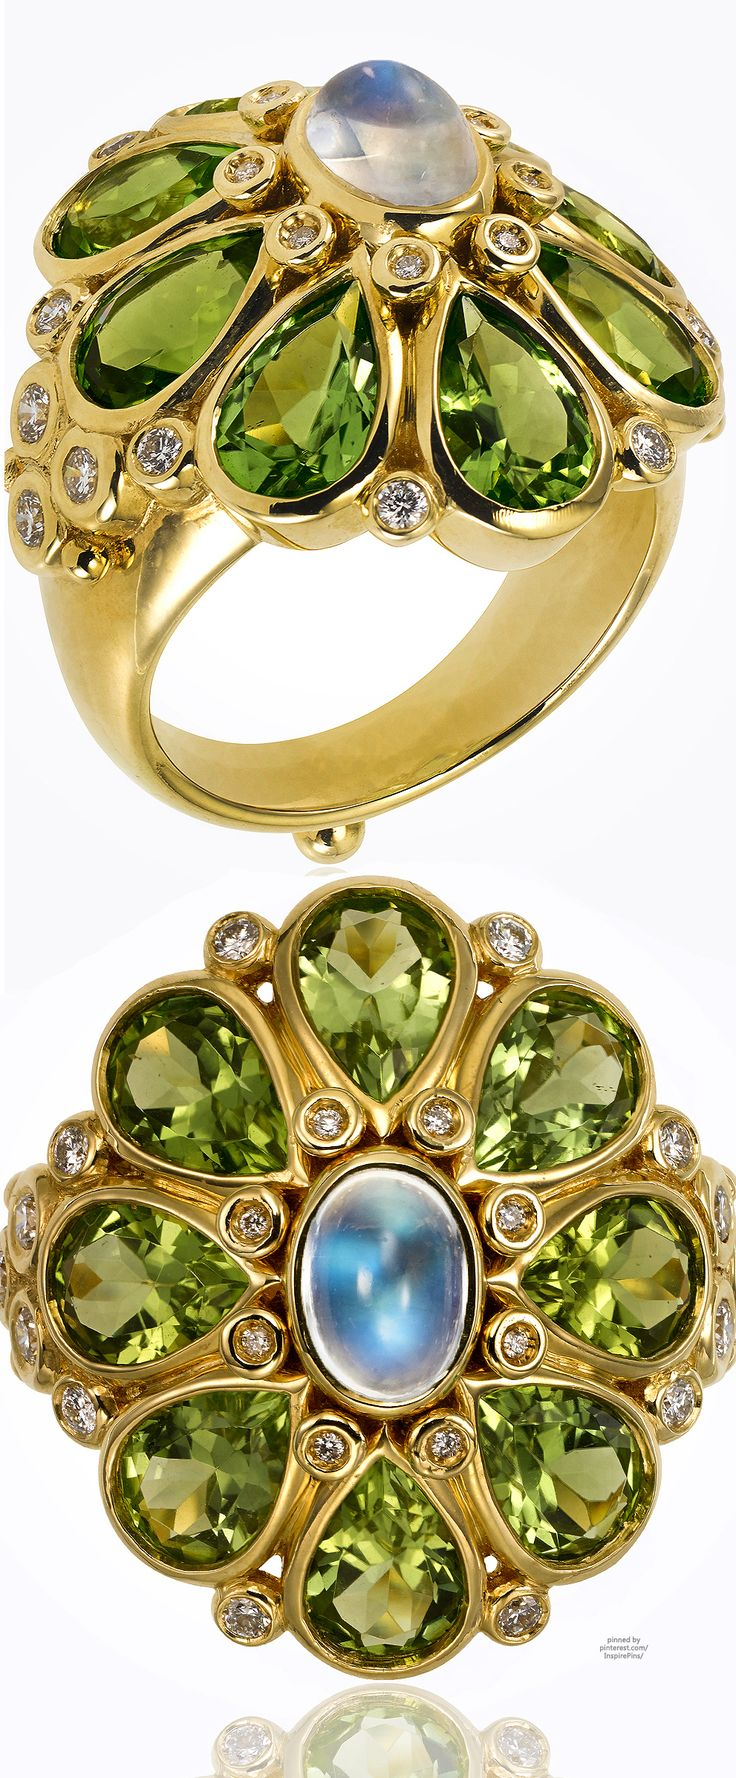 Moonstone, Peridot, Diamonds